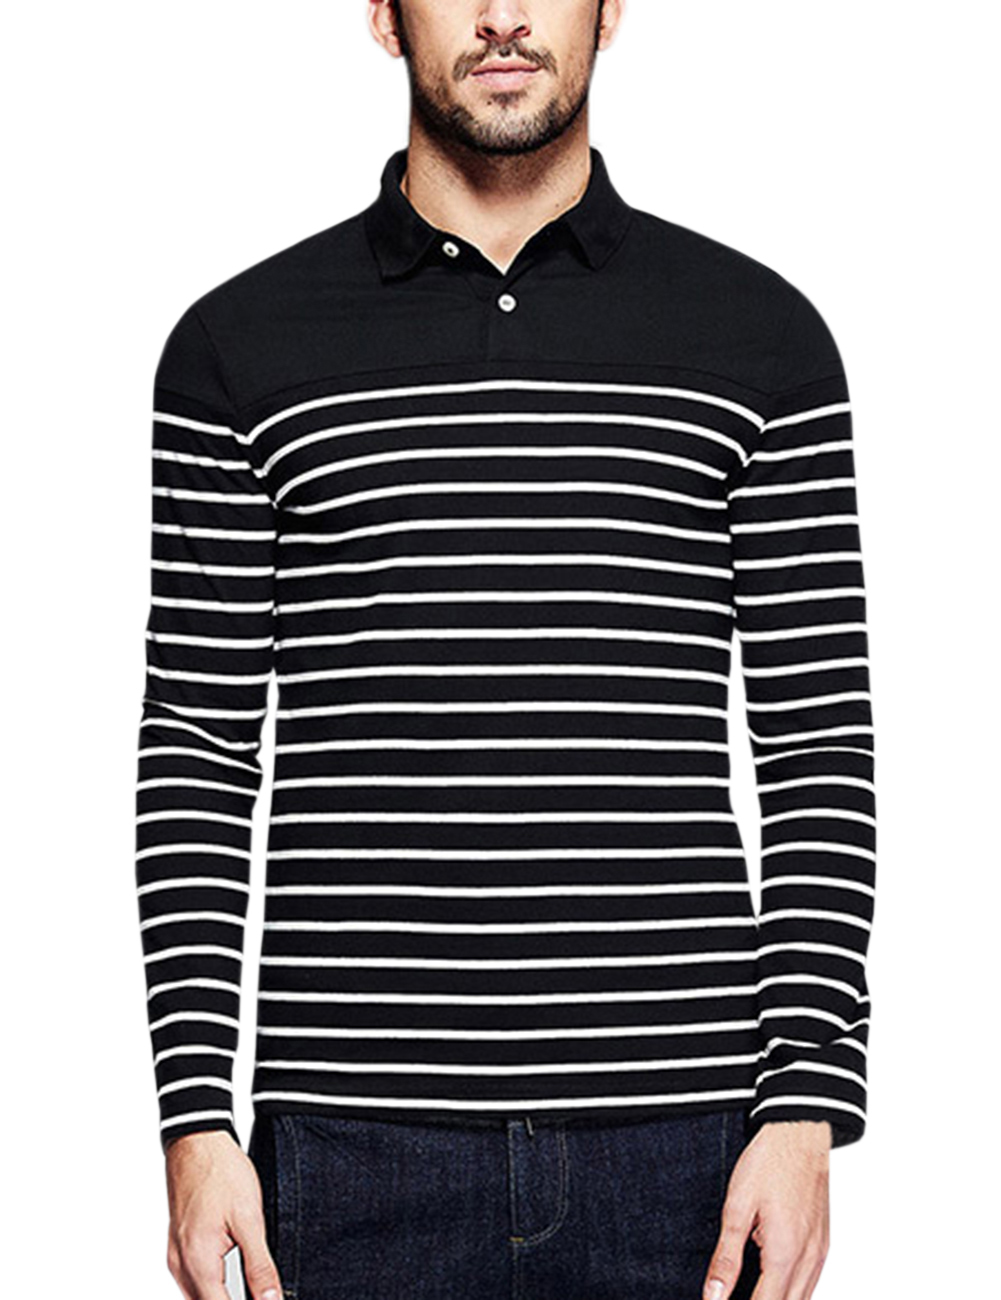 [US Direct] Yong Horse Men's Casual Long Sleeve Striped Slim Fit Polo T Shirts Black_Black